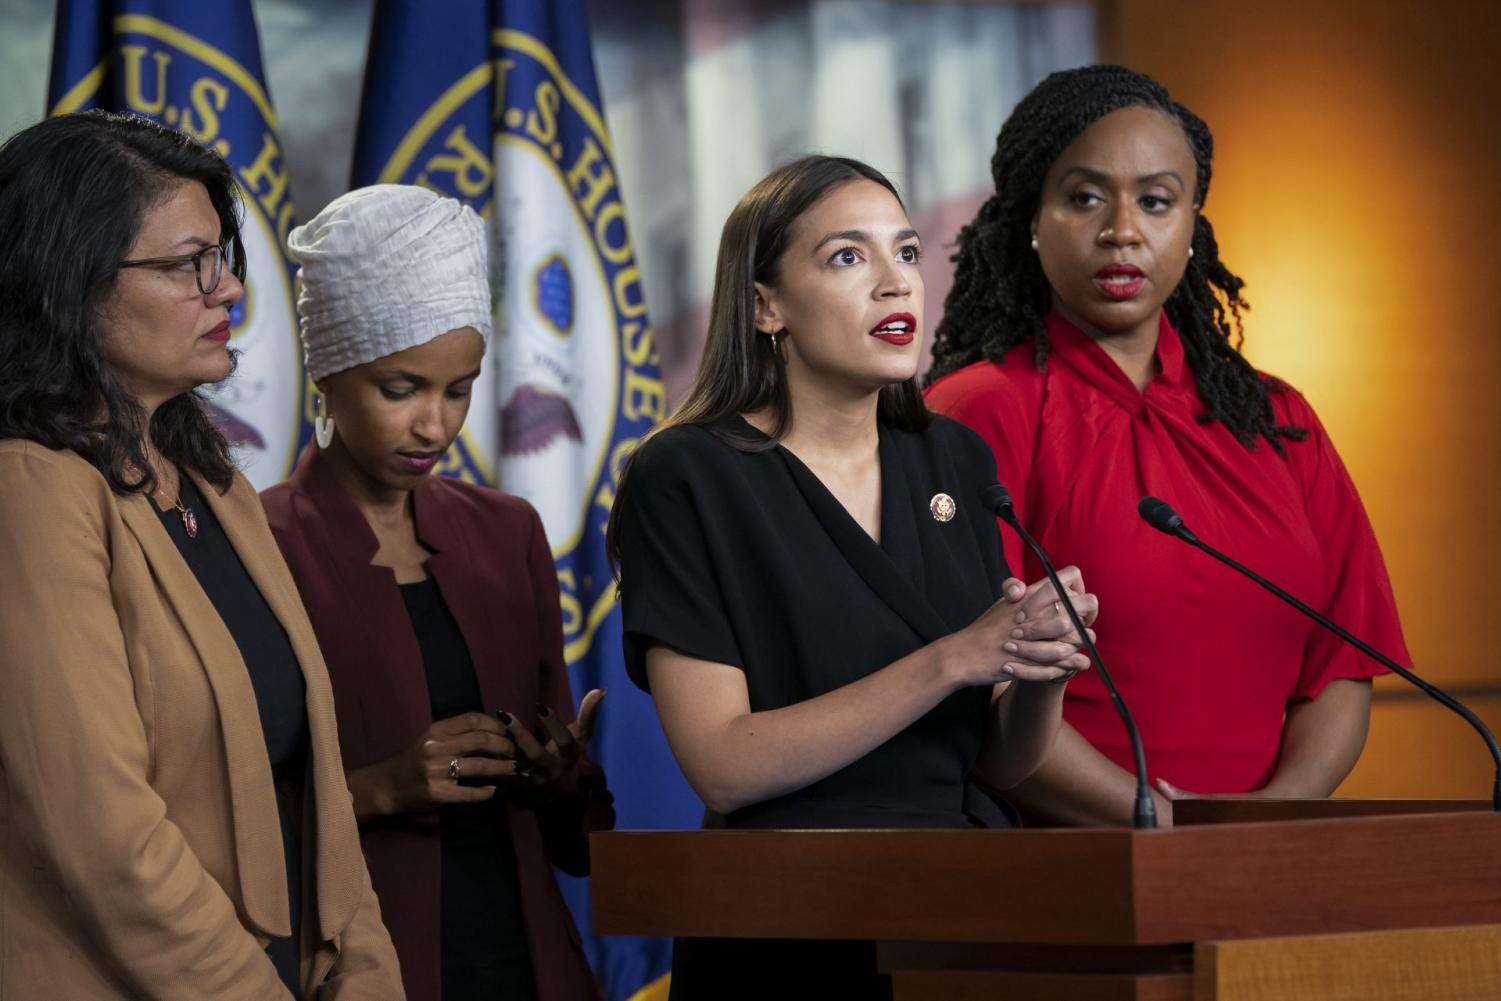 "In this July 15, 2019, file photo, from left, Rep. Rashida Tlaib, D-Mich., Rep. Ilhan Omar, D-Minn., Rep. Alexandria Ocasio-Cortez, D-N.Y., and Rep. Ayanna Pressley, D-Mass., speak at the Capitol in Washington. All are American citizens and three of the four were born in the U.S. President Donald Trump told American congresswomen of color to ""go back"" to where they came from. He later vowed to revive a racial slur to tear down Elizabeth Warren, promoted a wild conspiracy theory linking a past political opponent to the death of a high-profile sex offender and blamed Friday's stock market slide on a low-polling former presidential candidate."